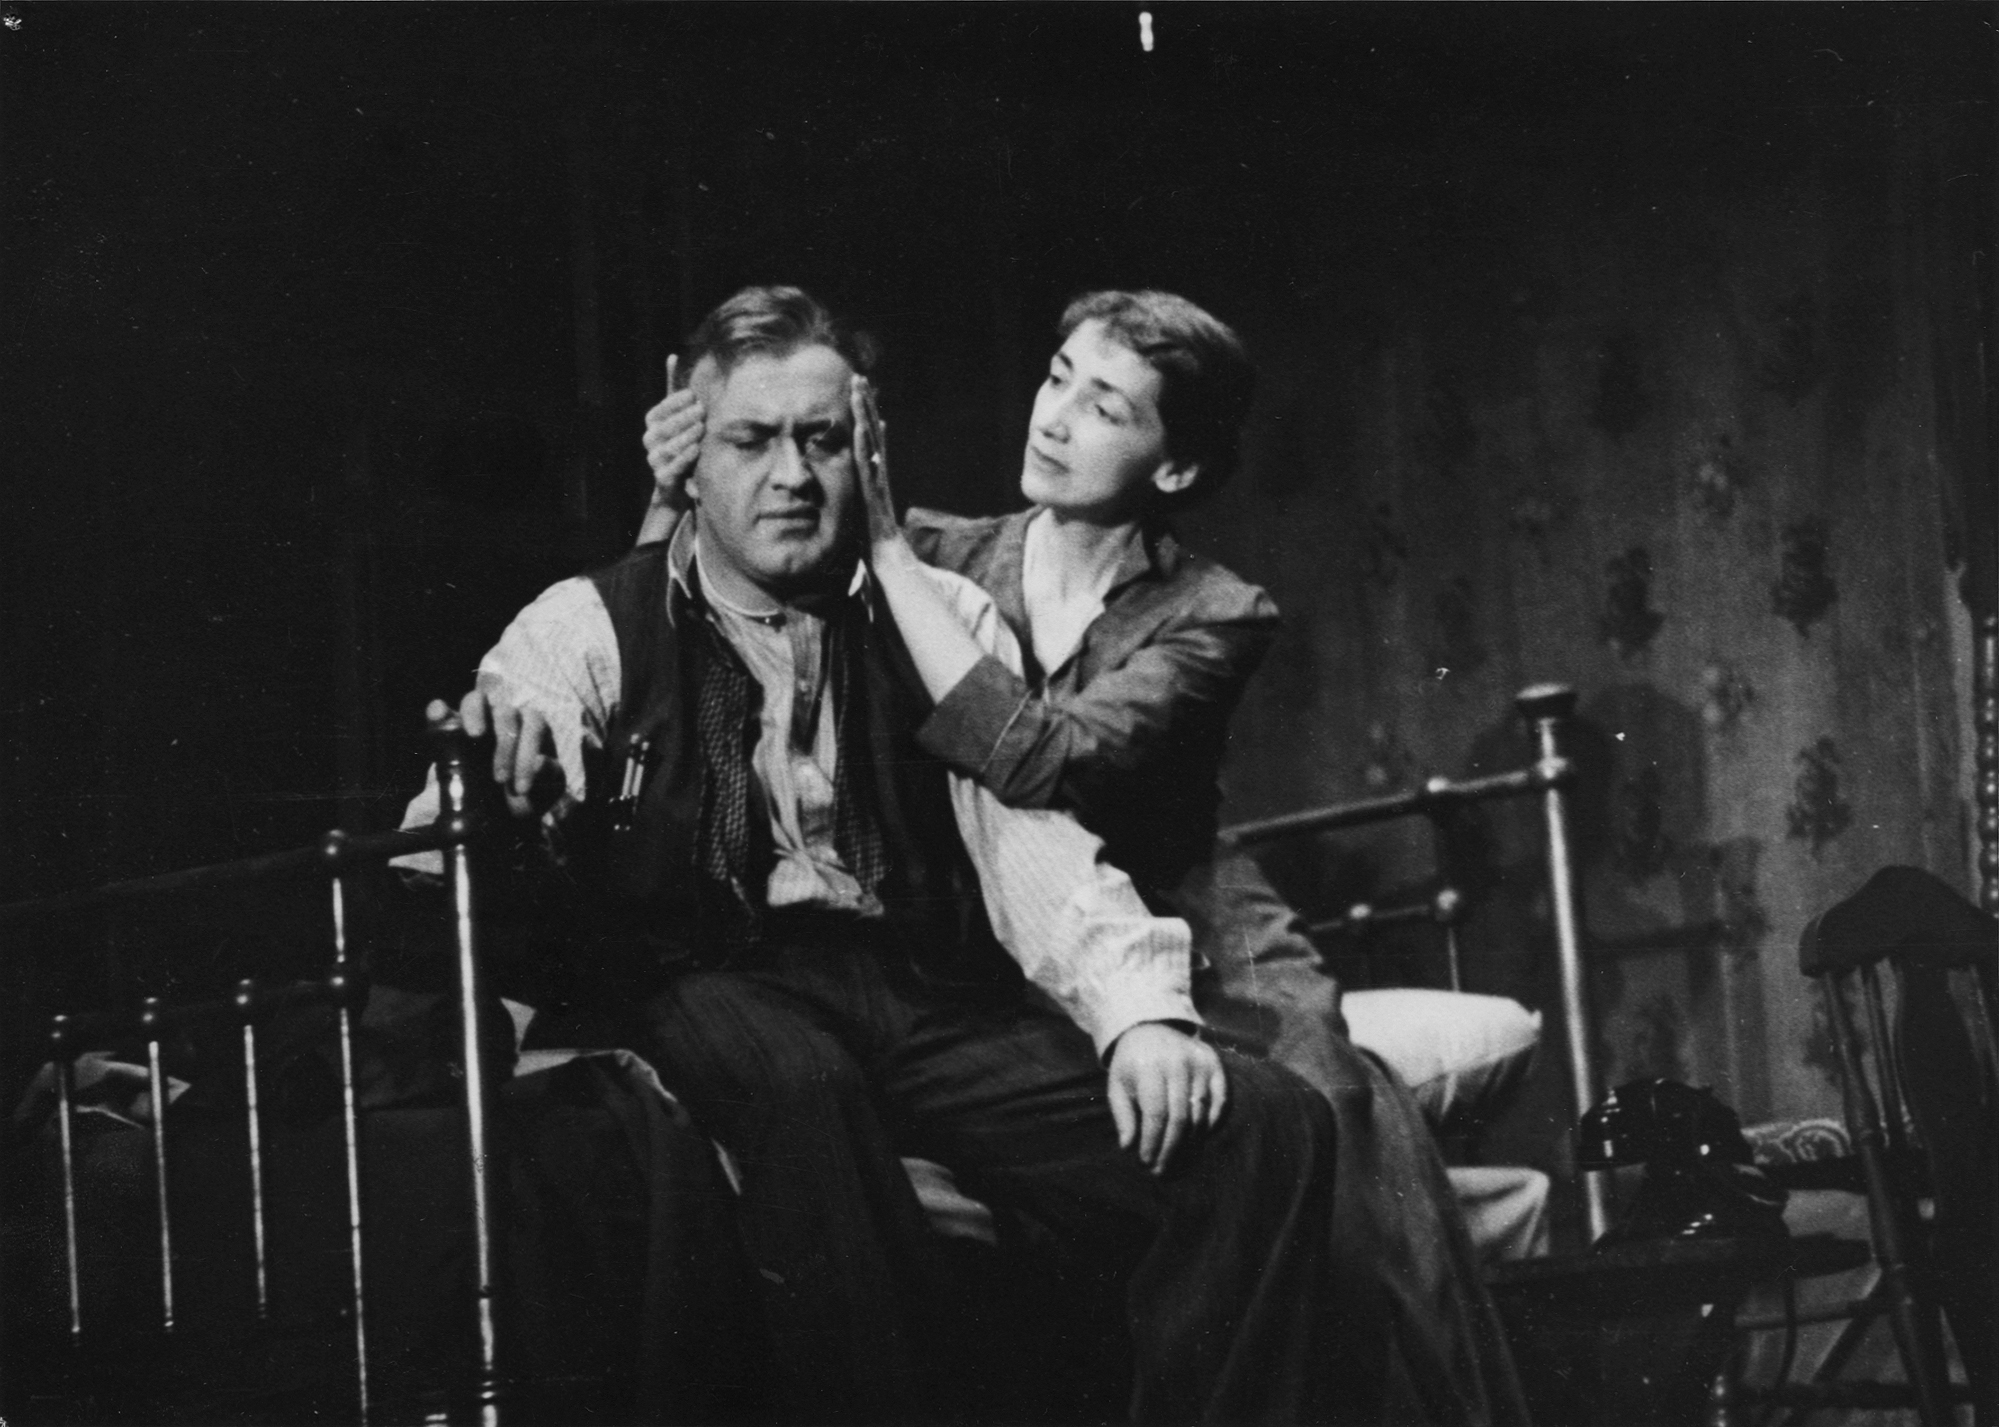 Lee J. Cobb as Willy and Mildred Dunnock as Linda in the original production of Death of a Salesman], 1949.